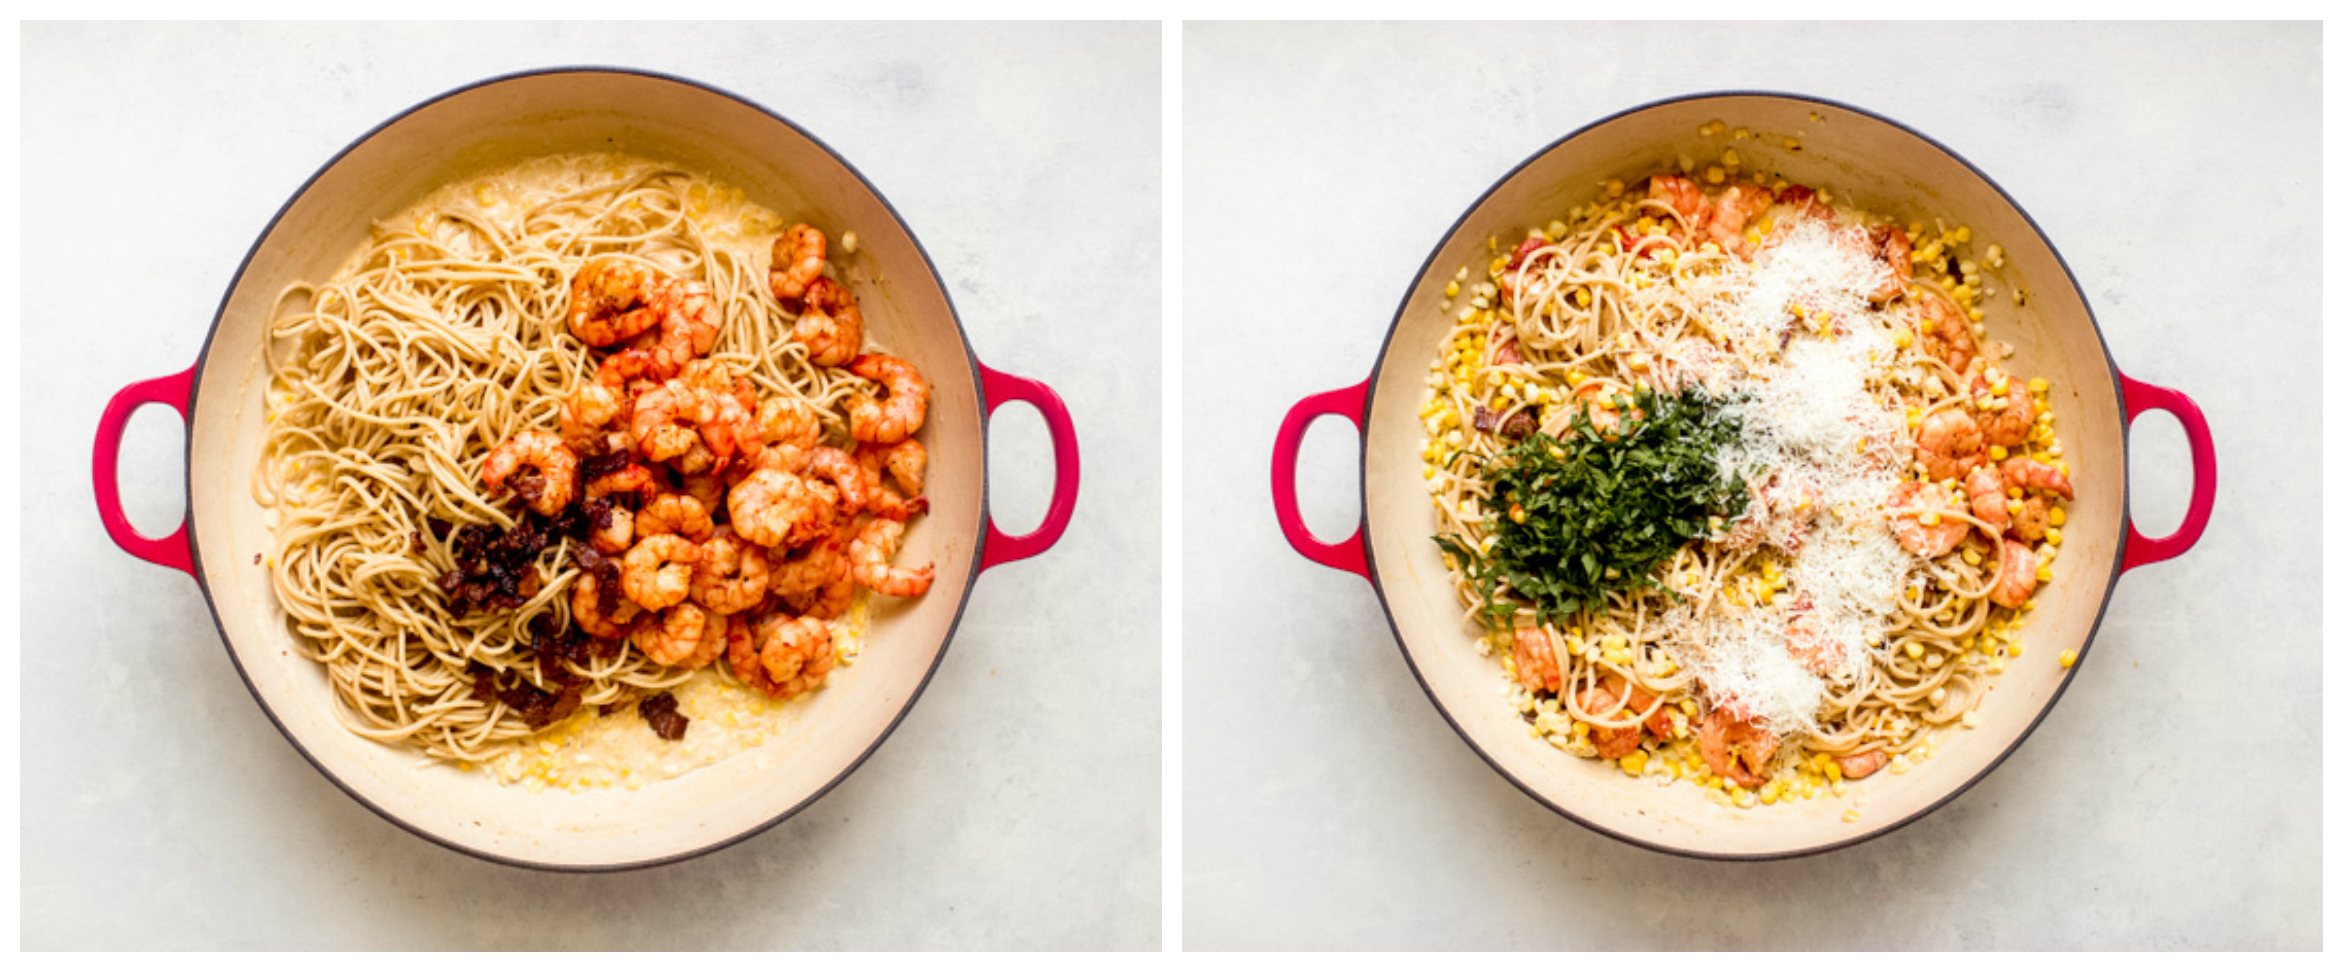 cooked spaghetti and shrimp in pan